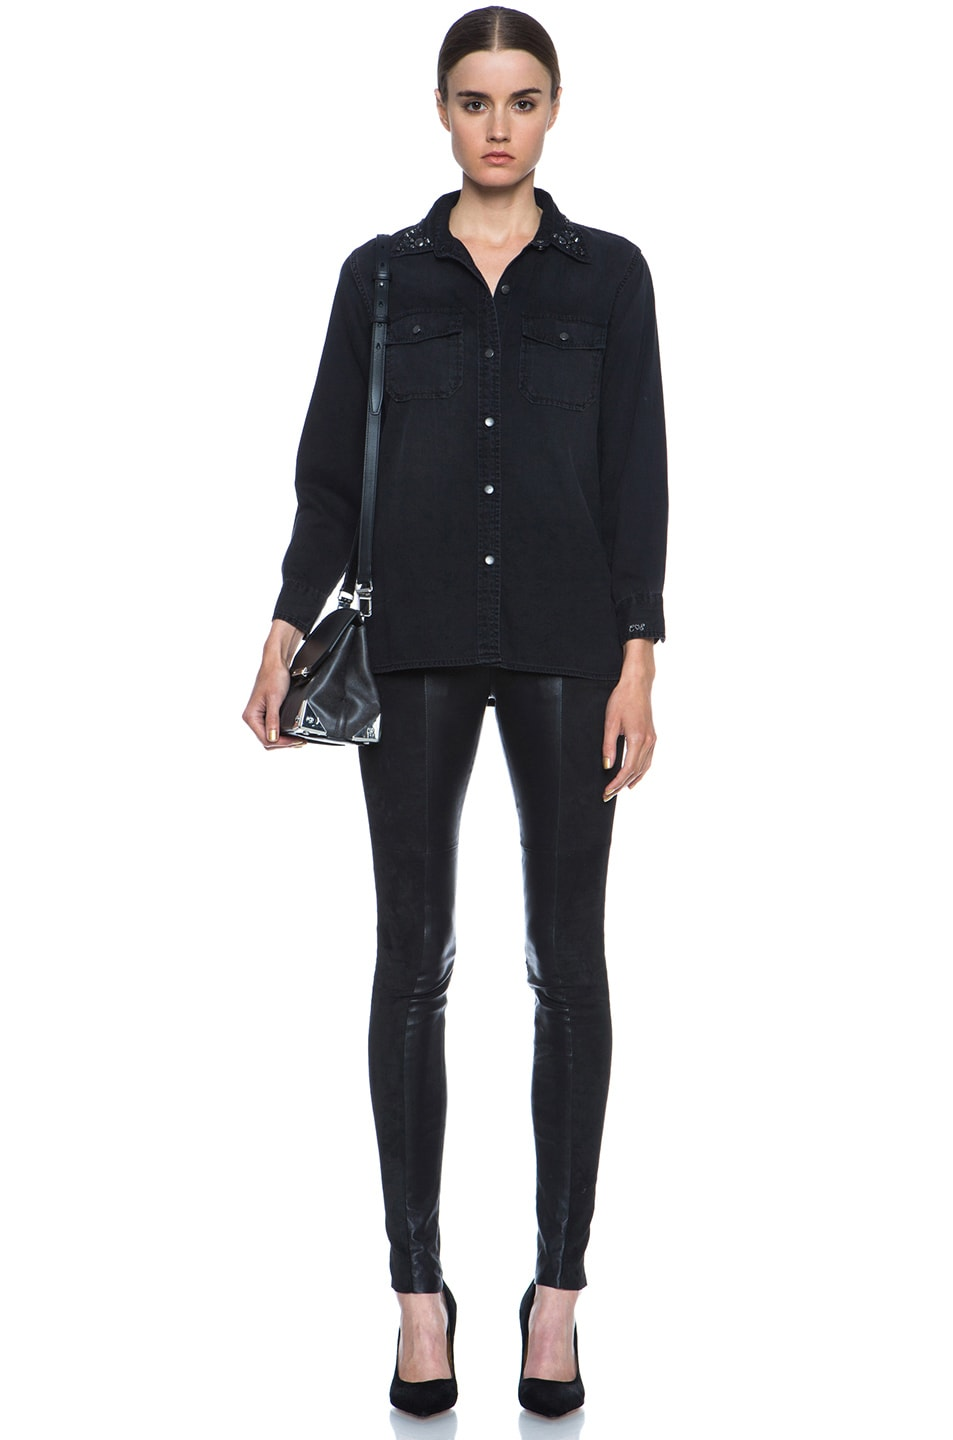 Image 5 of Current/Elliott Jean Perfect Shirt Without Epaulettes in Black & Jet